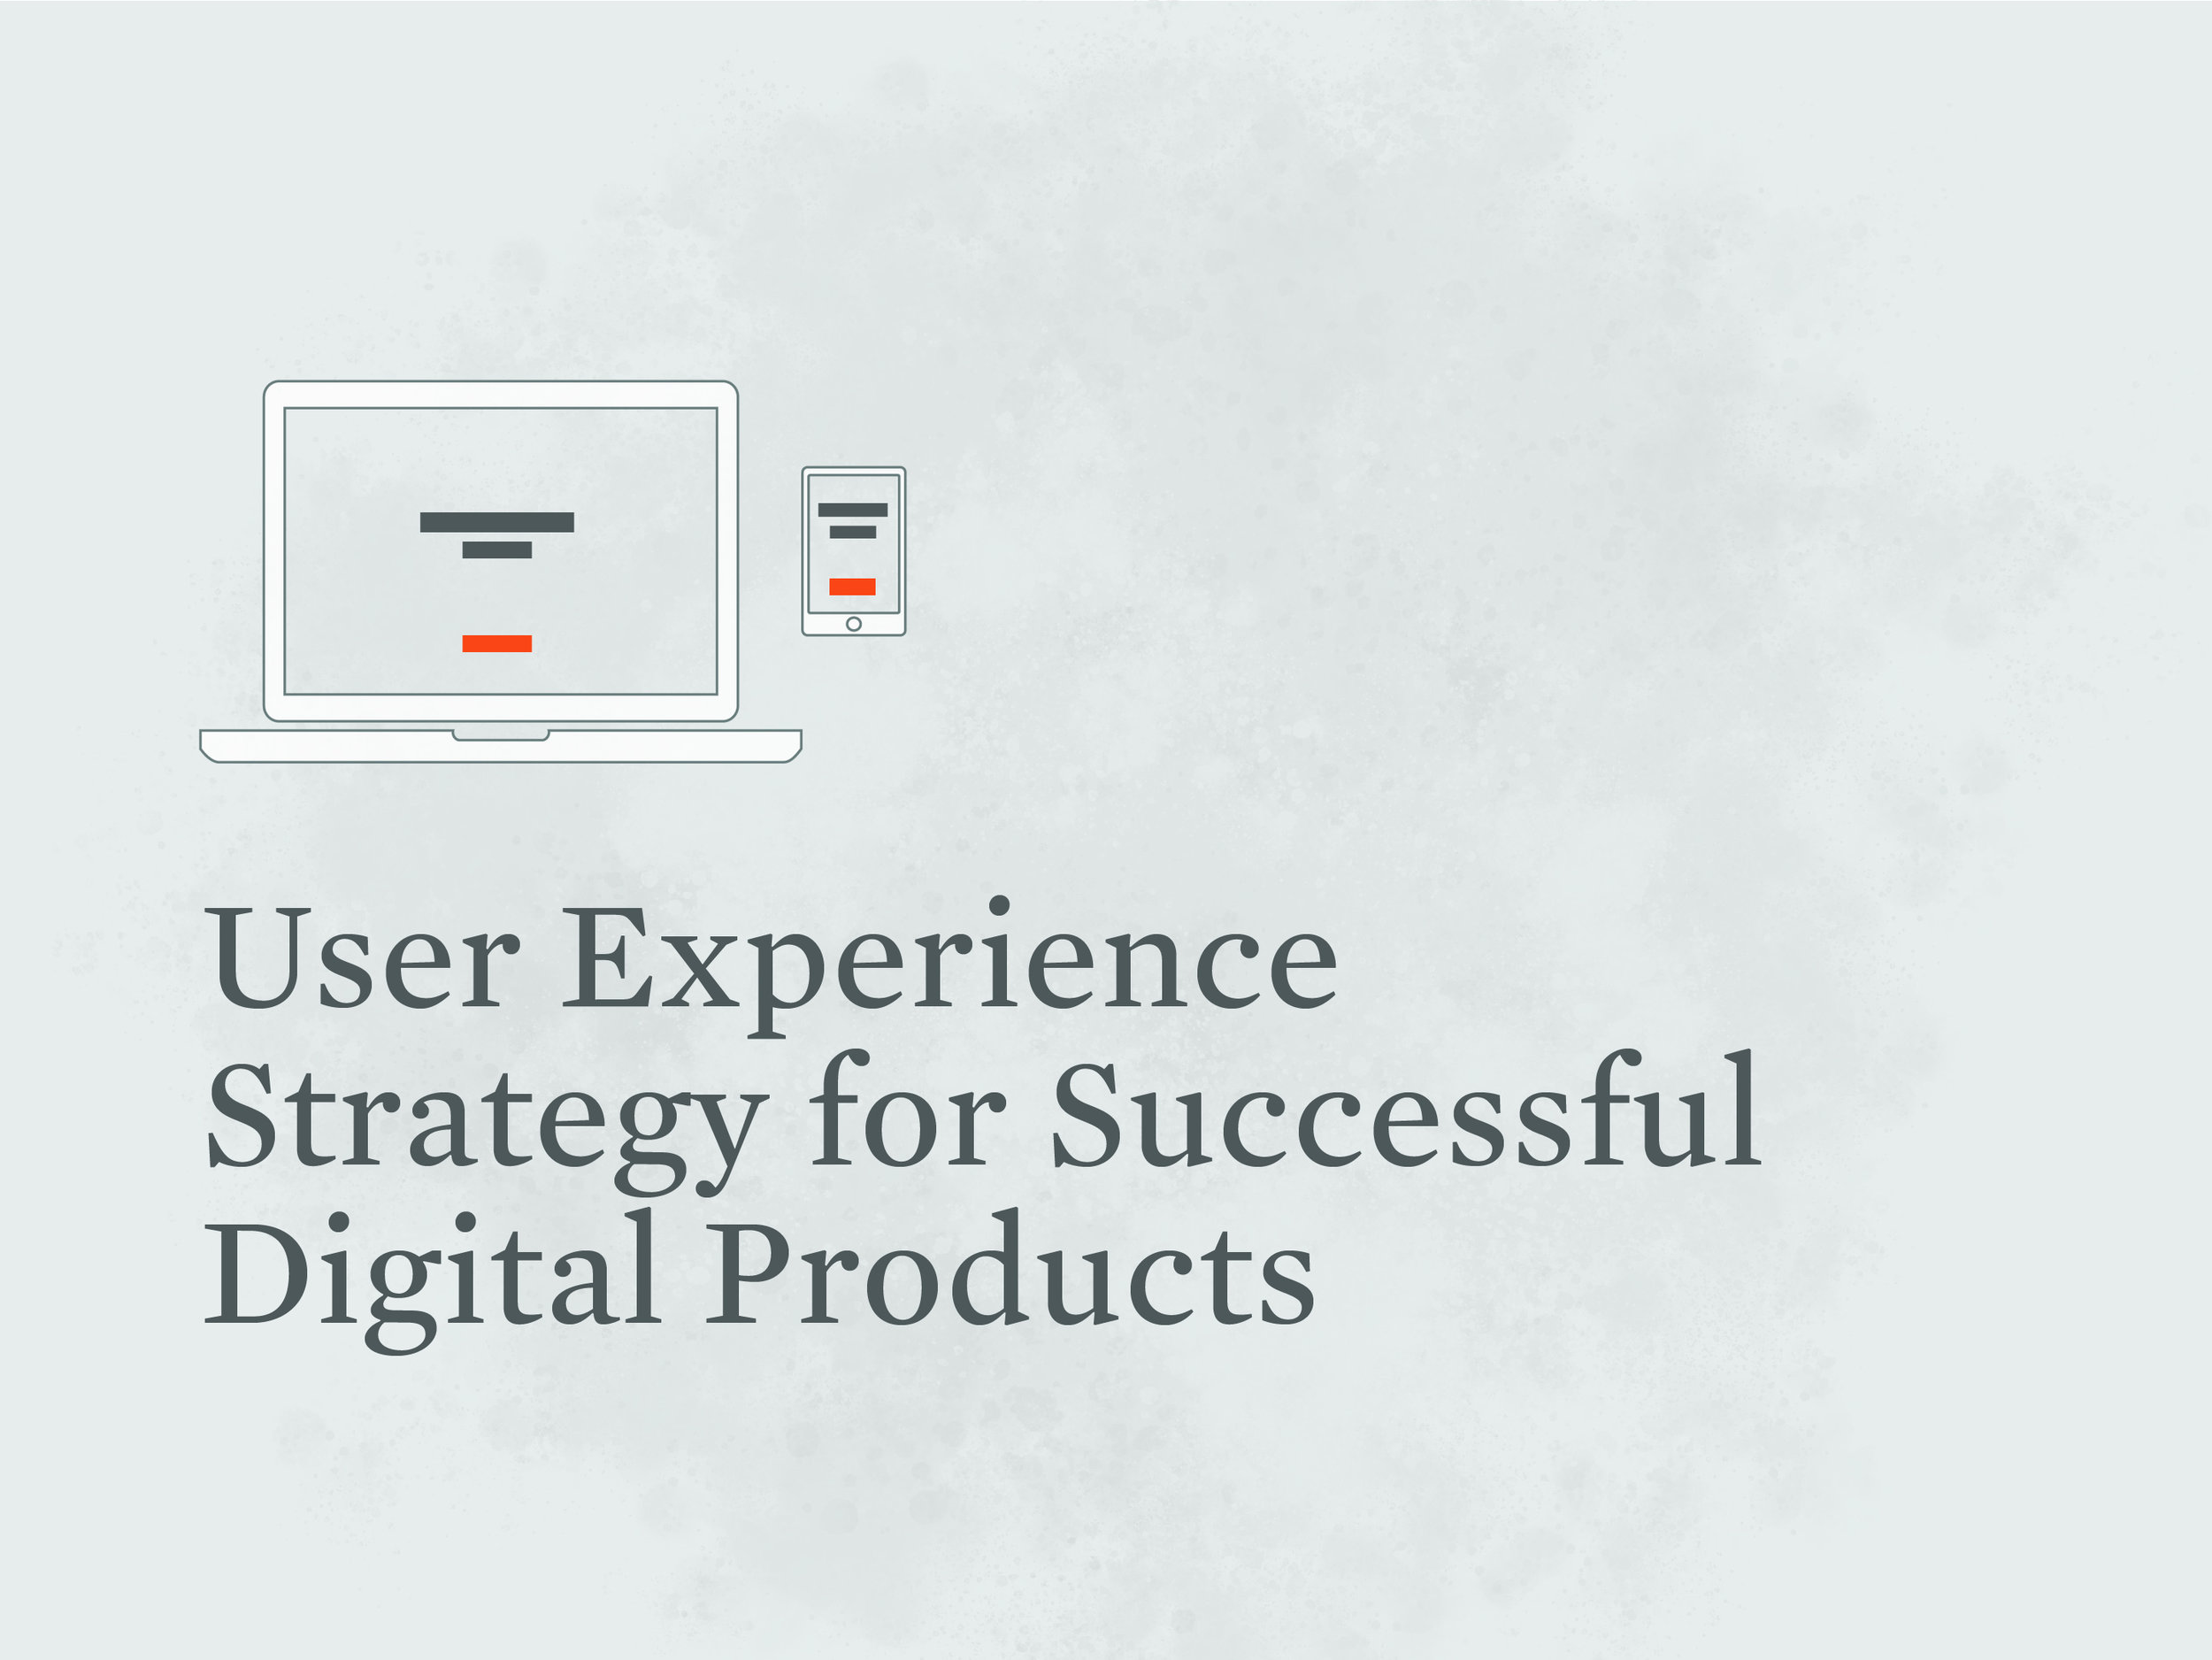 UX Strategy for Successful Digital Products Seminar